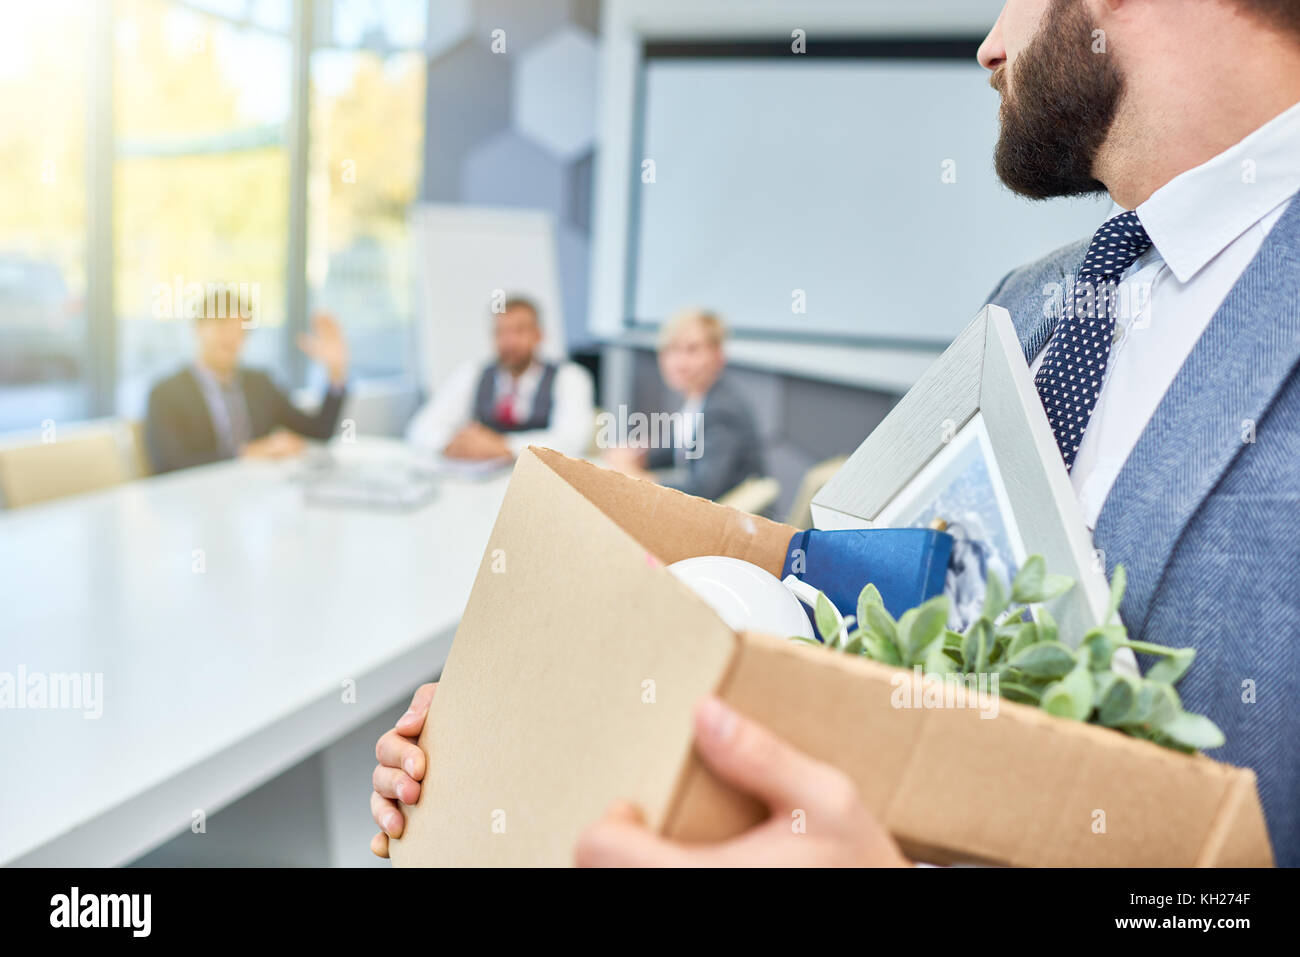 Unrecognizable man holding box of personal belongings looking back at several business people who fired him - Stock Image